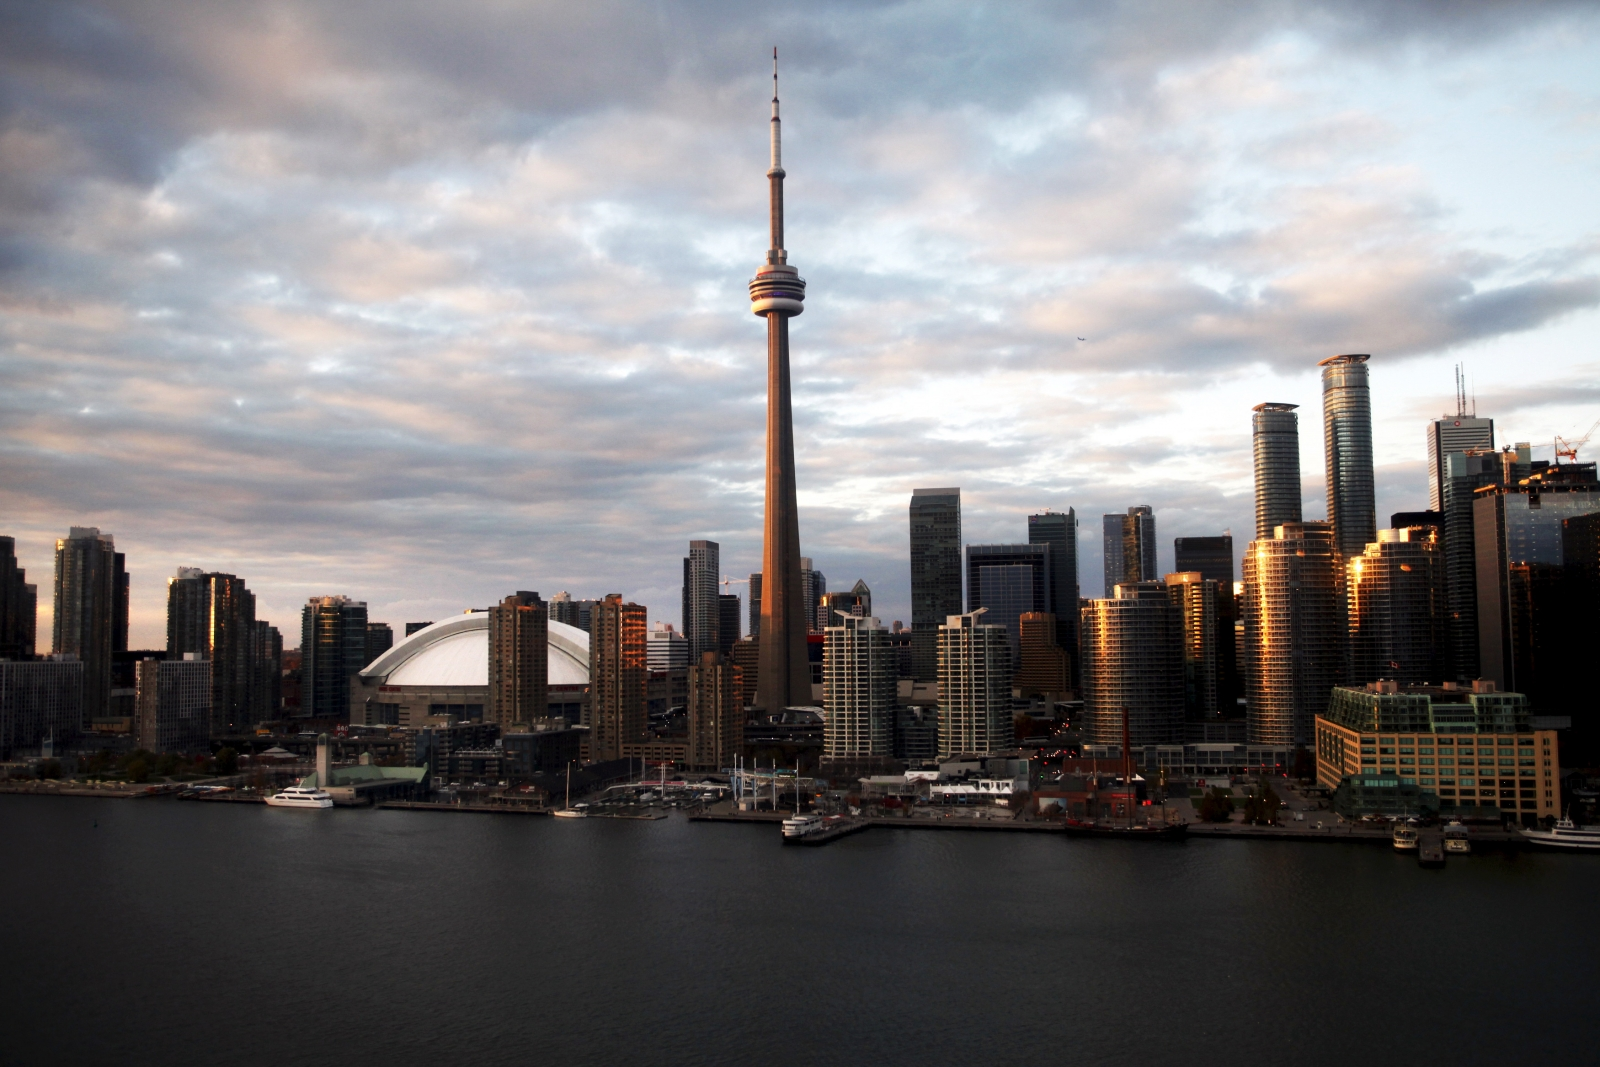 Sidewalk Labs May Build a High-Tech City District From Scratch in Toronto